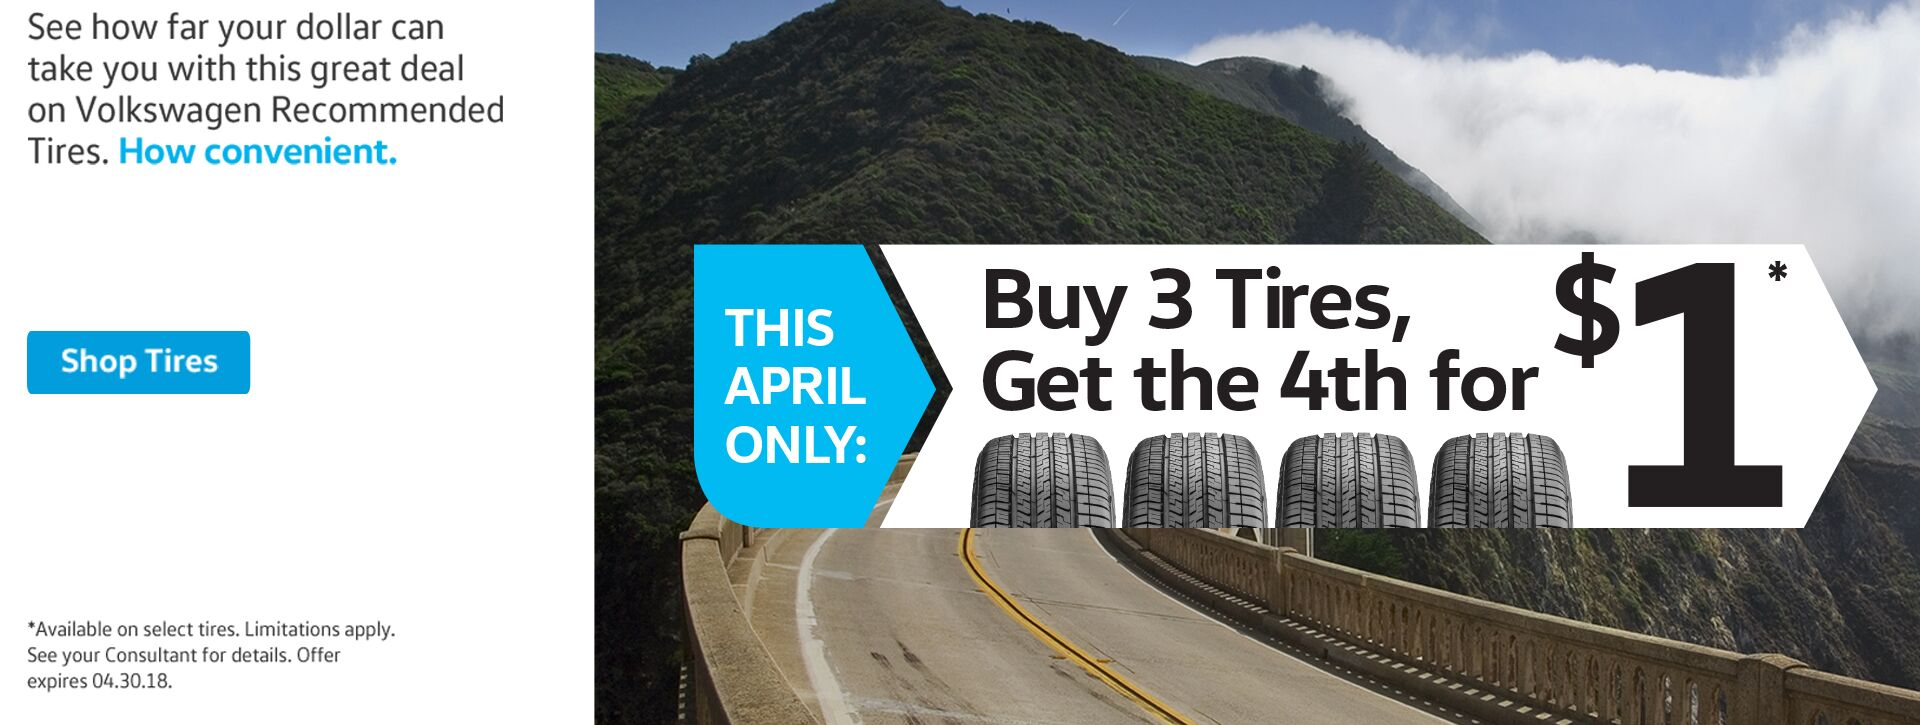 Buy 3 Tires Special